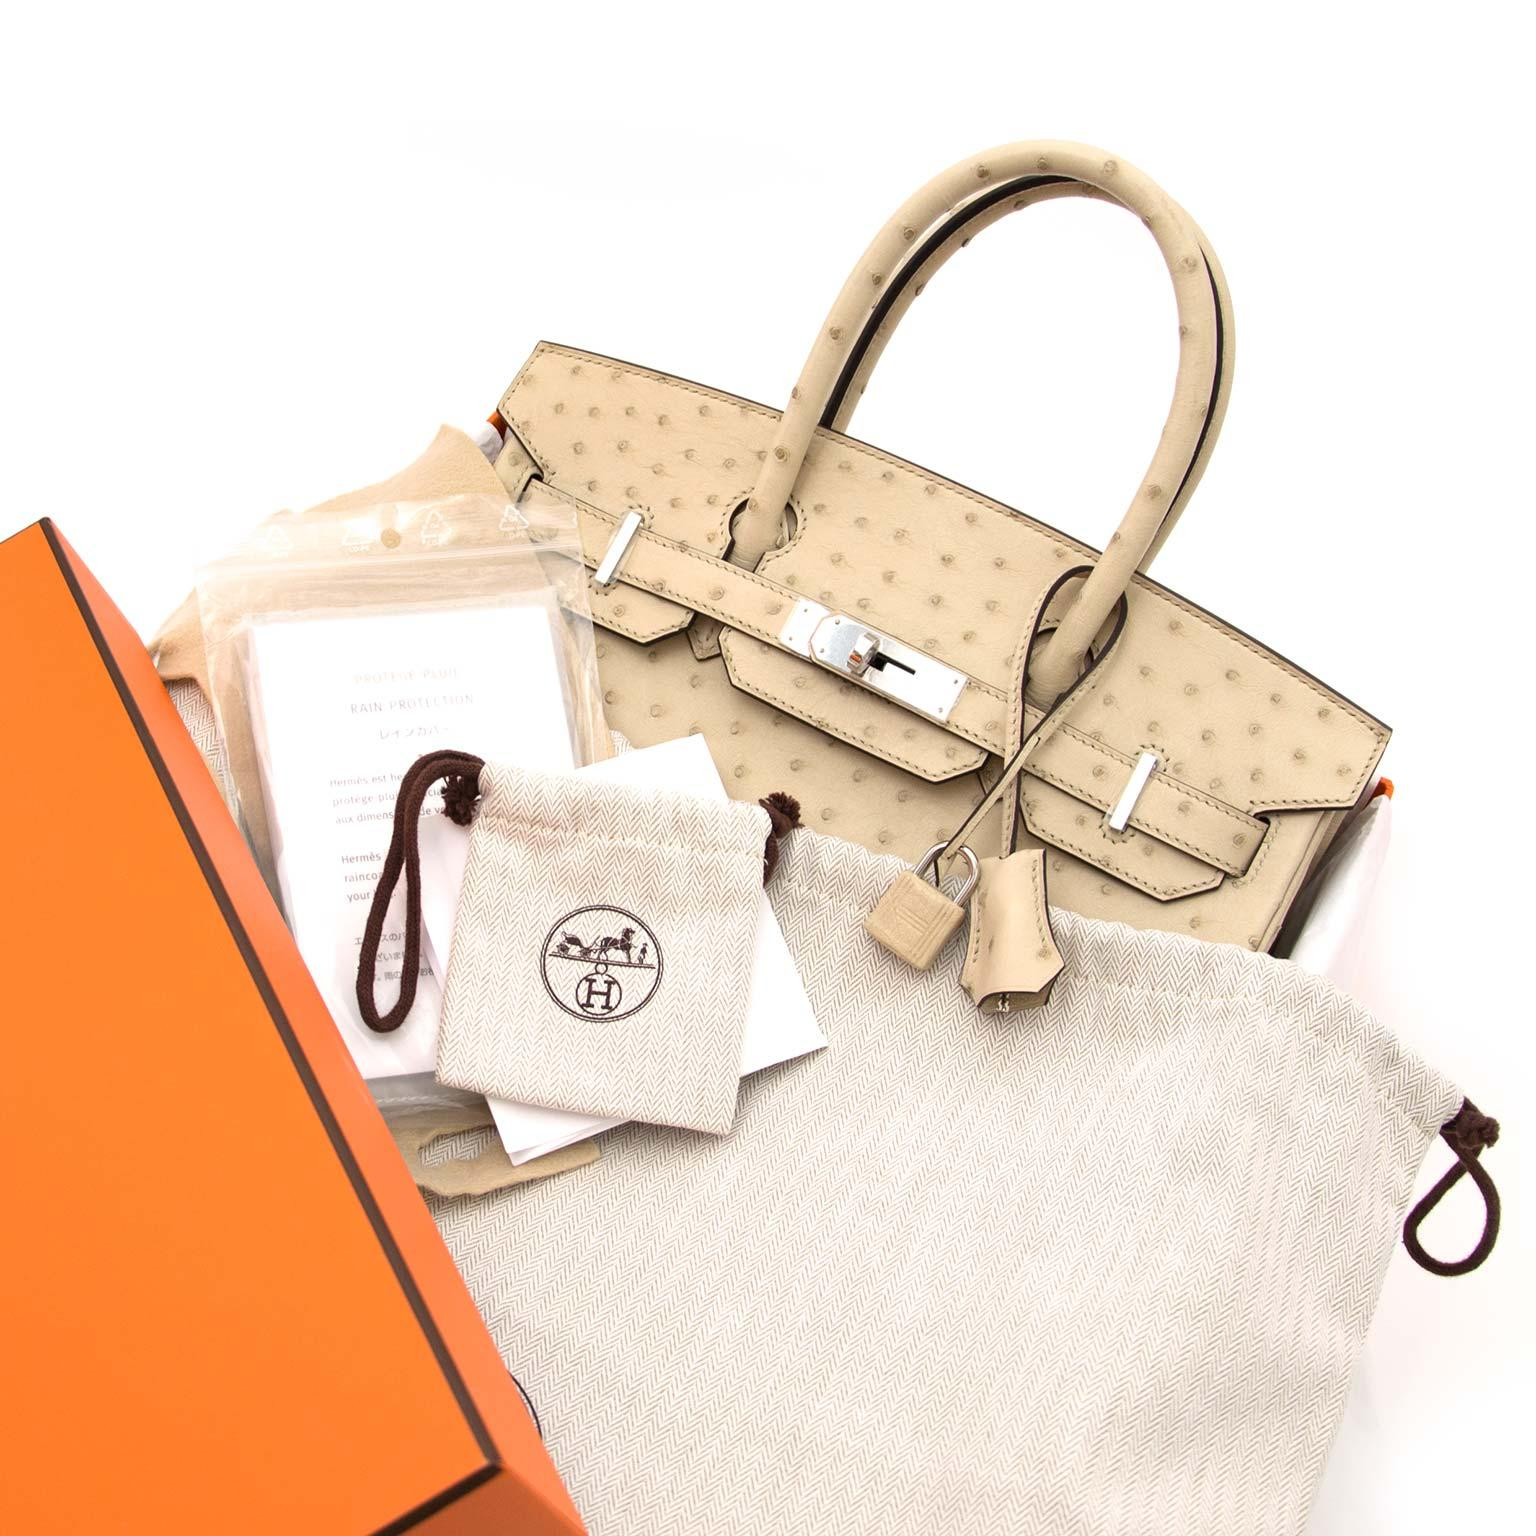 73a37fe1125 Never Used Hermes Birkin 30cm Parchemin Ostrich PHW at 1stdibs